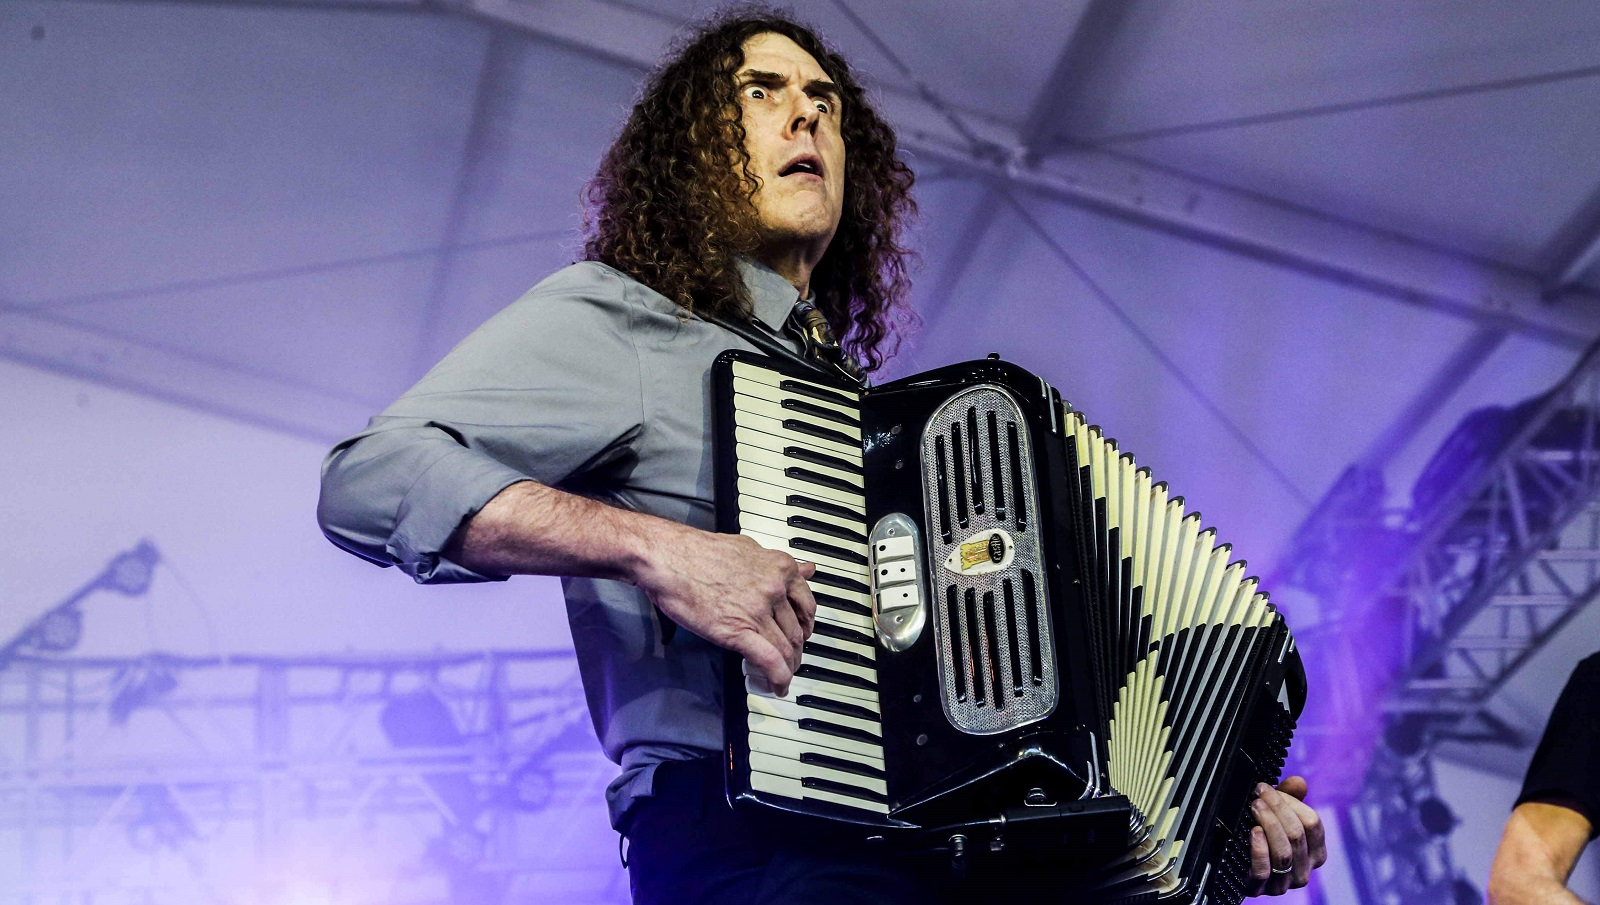 'Weird Al' Yankovic, pictured performing at the Governor's Ball in New York, hit the University at Buffalo Center for the Arts on Wednesday. (Krista Schlueter/The New York Times)